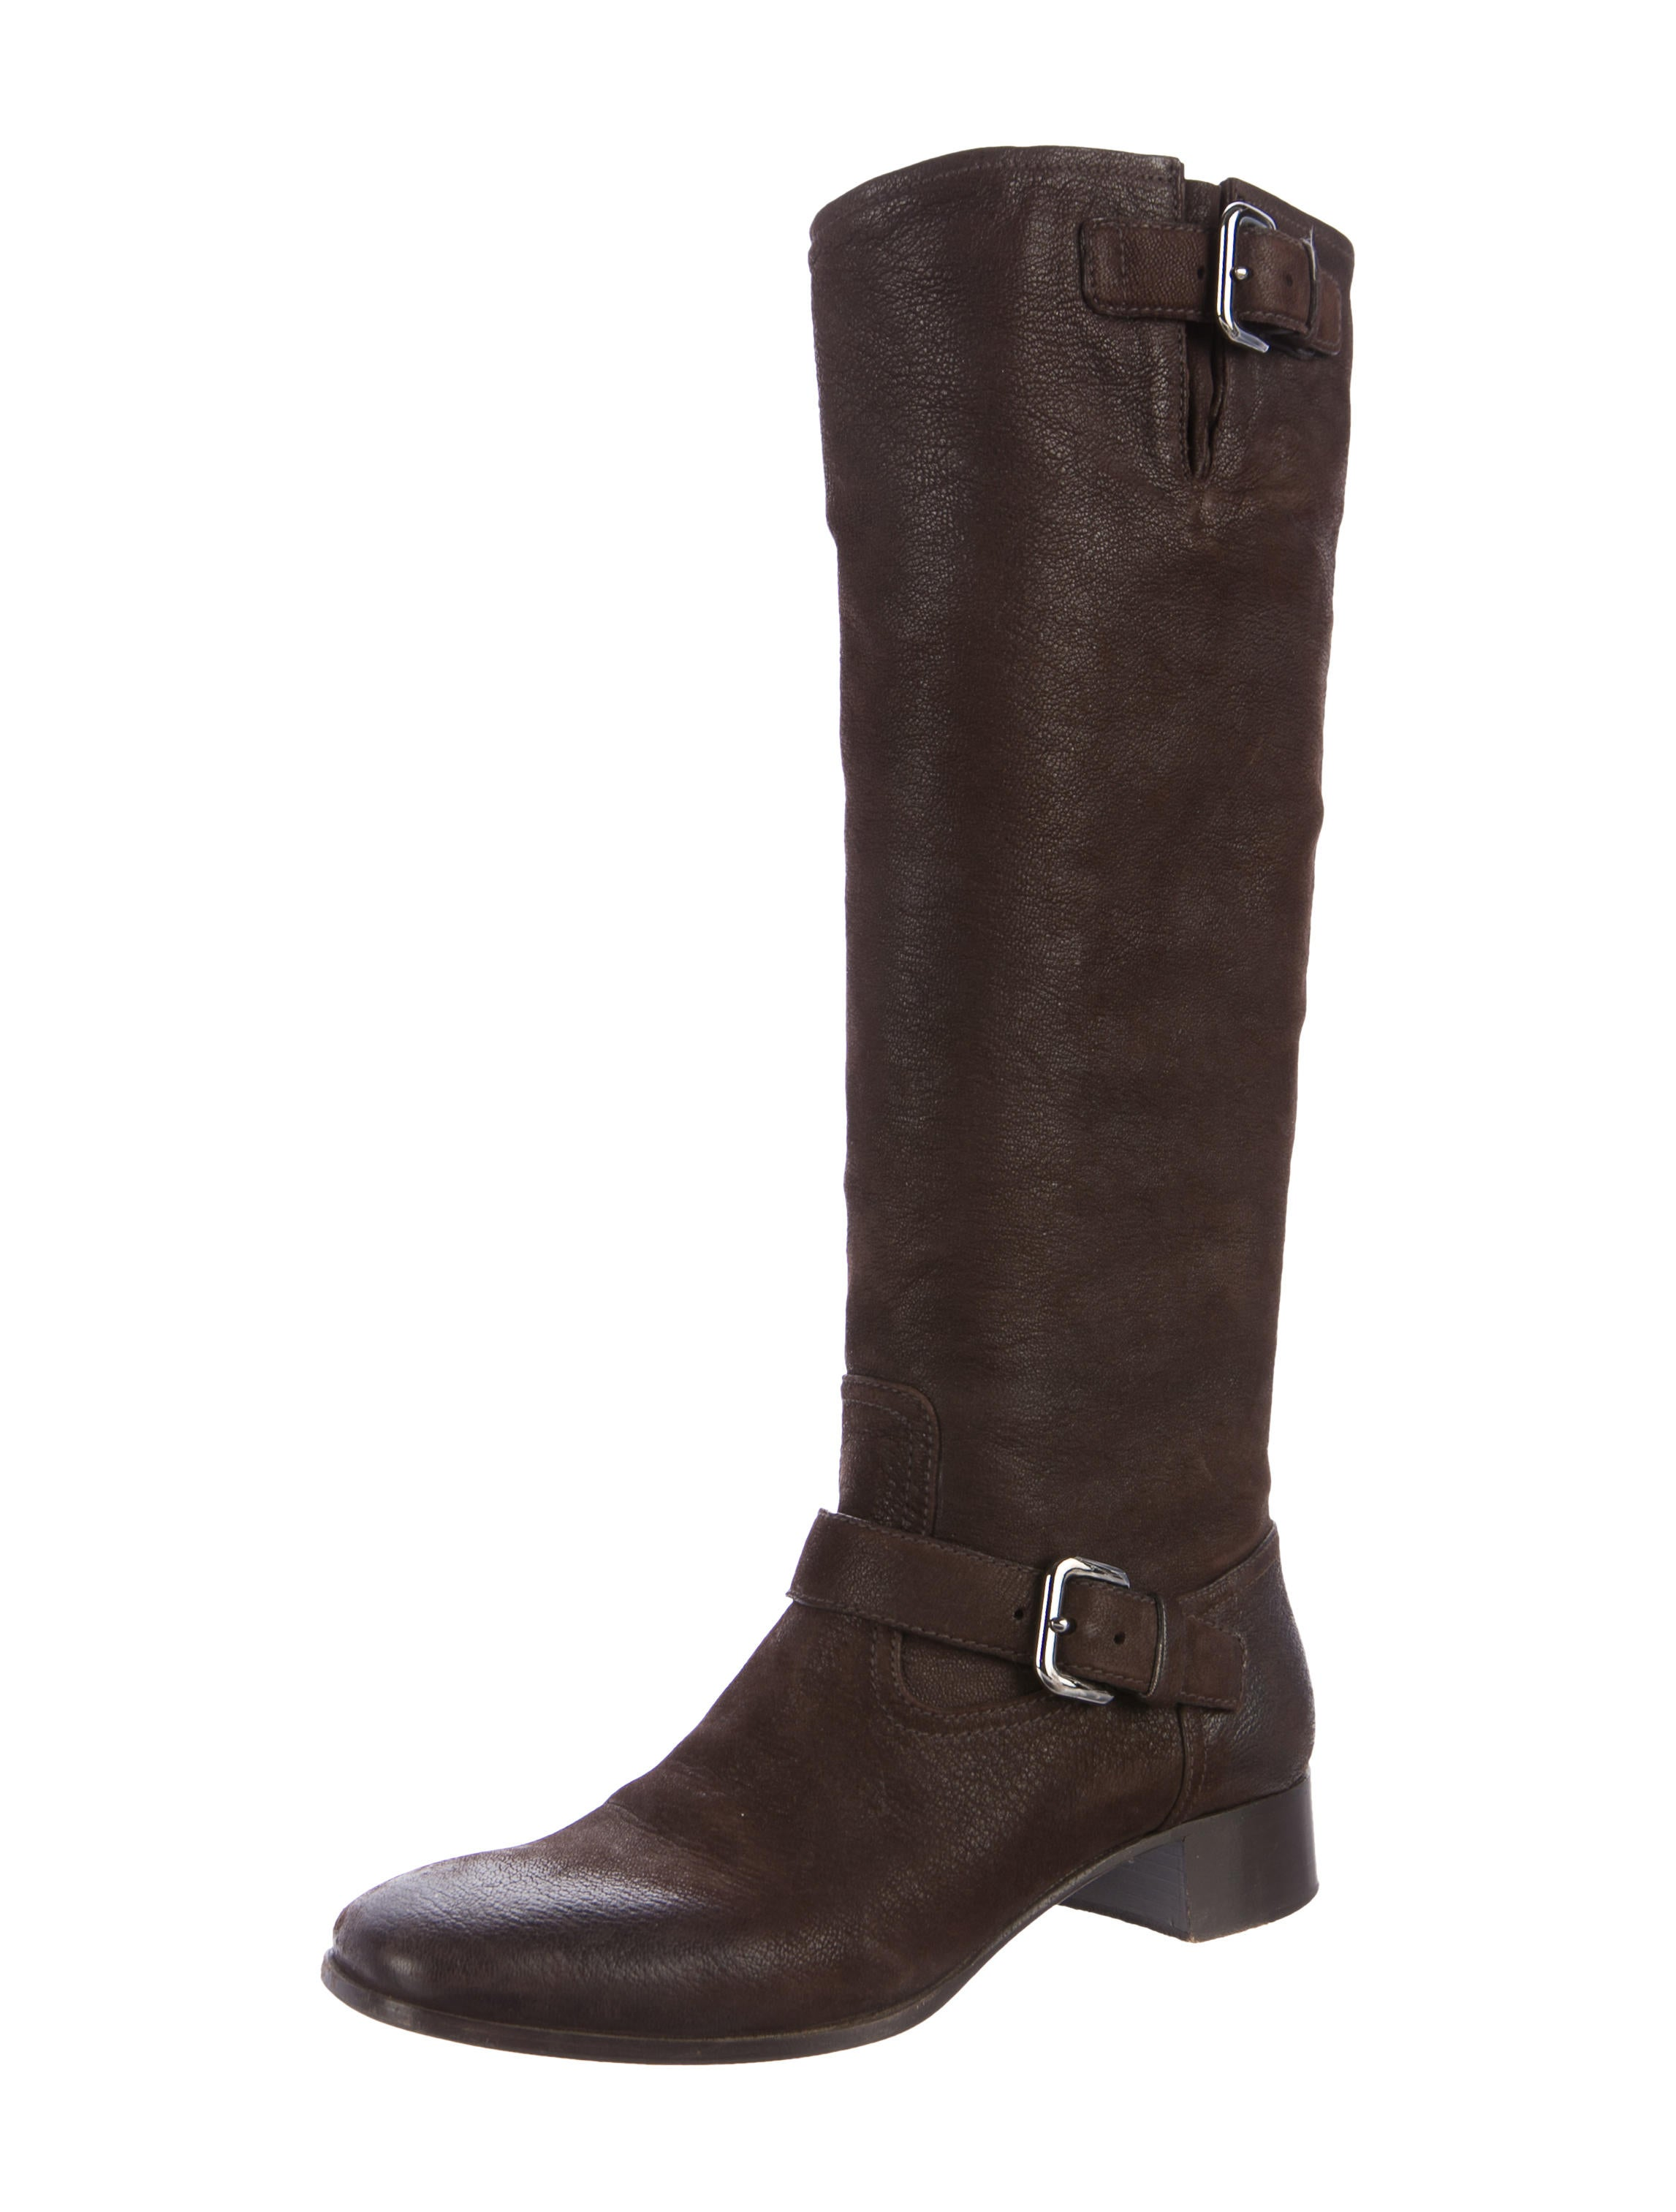 prada leather knee high boots shoes pra165968 the